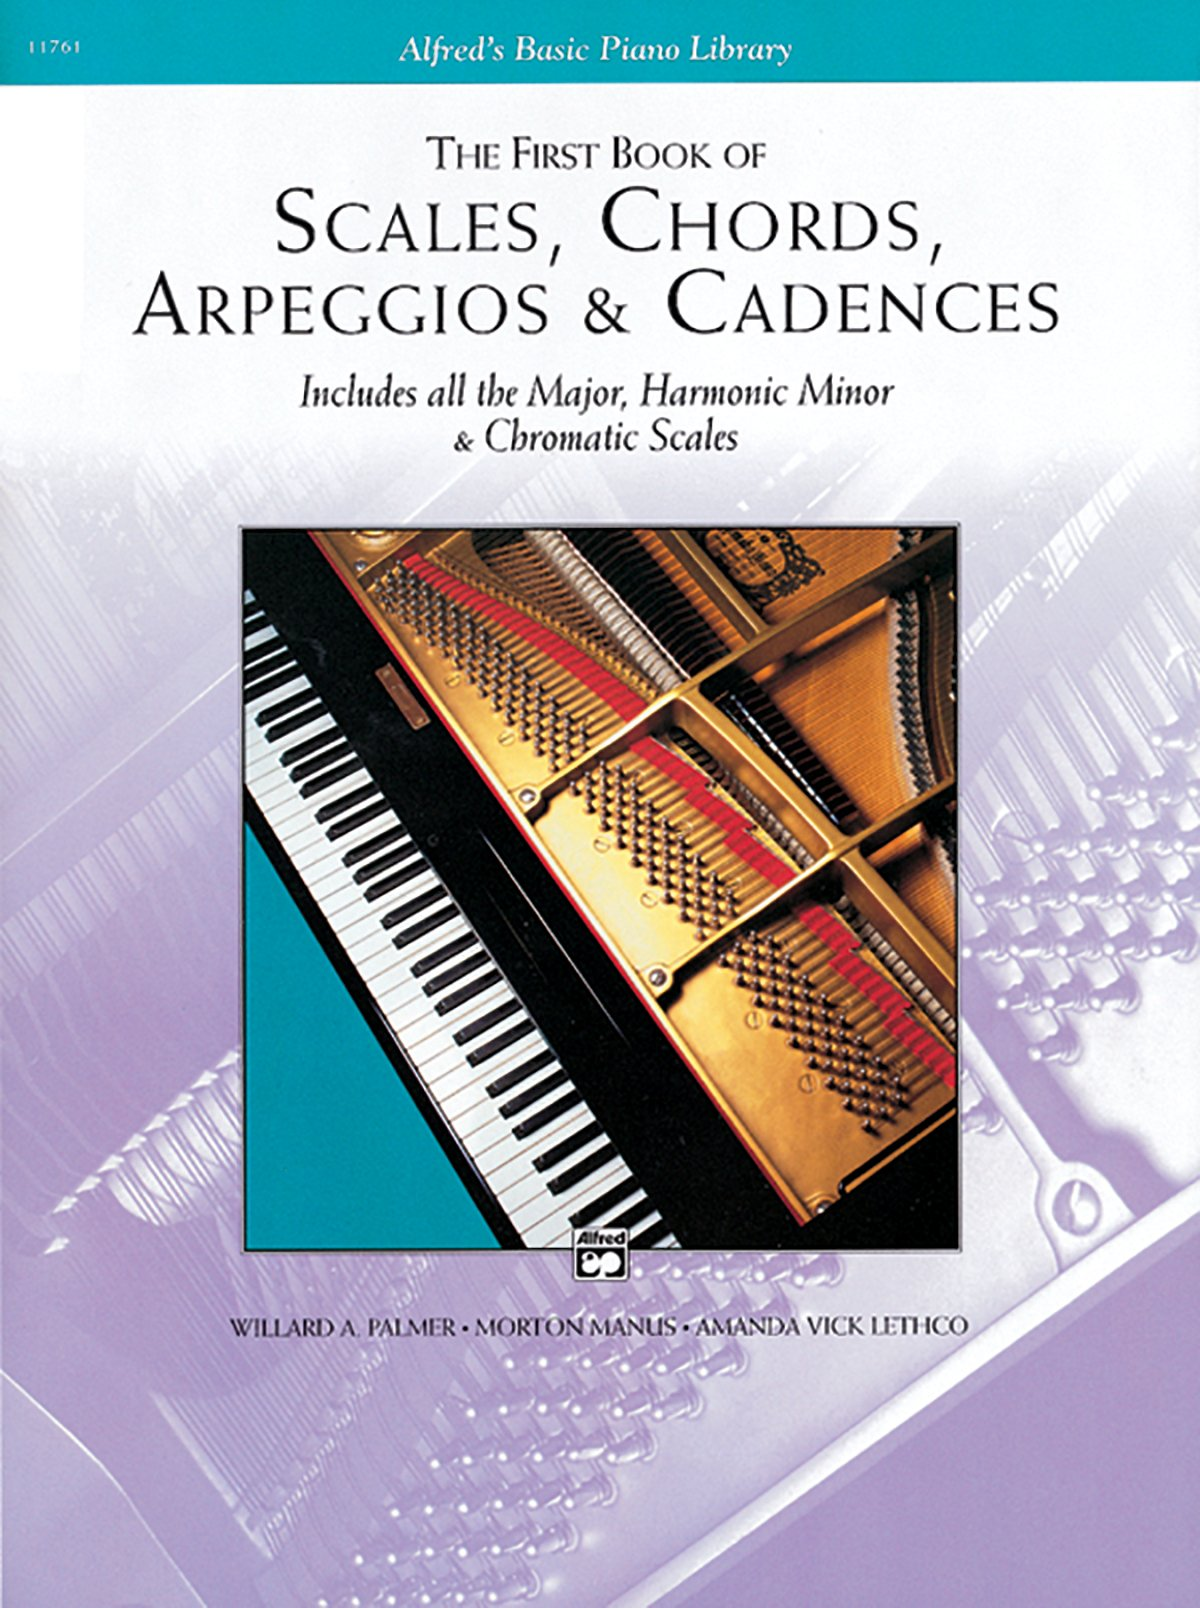 The first book of scales chords arpeggios cadences includes the first book of scales chords arpeggios cadences includes all the major harmonic minor chromatic scales alfreds basic piano library willard a hexwebz Image collections